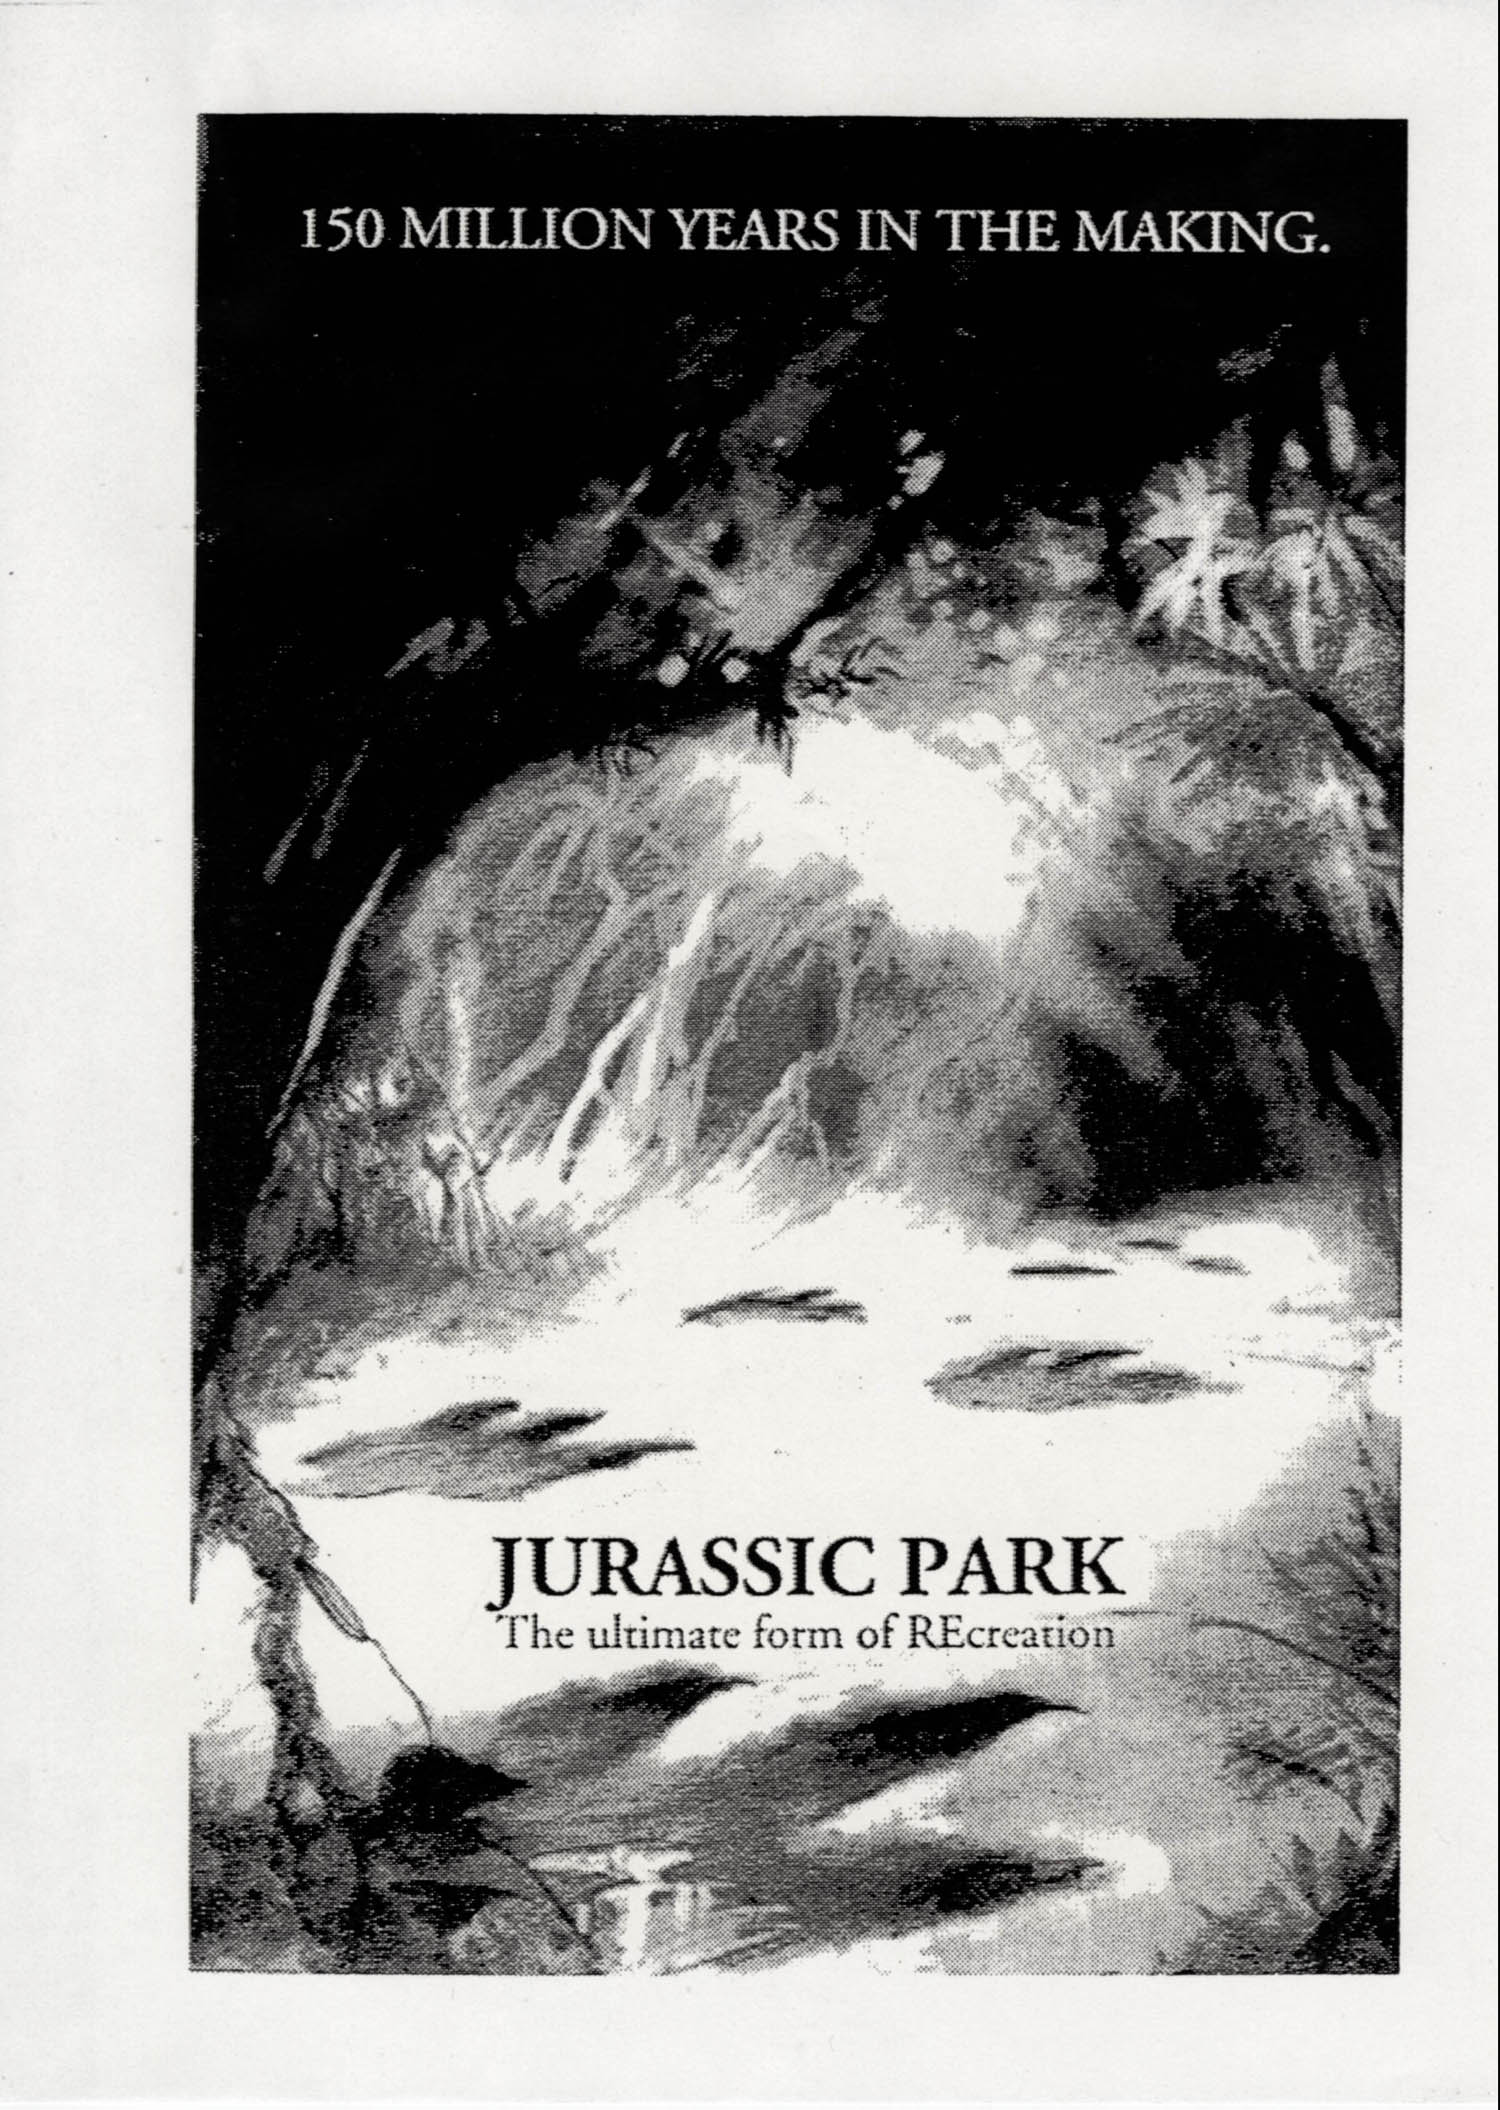 John Alvin   Jurassic Park poster   2 Exclusive: Over a Dozen Never Before Seen Jurassic Park Posters From Famous Artist John Alvin